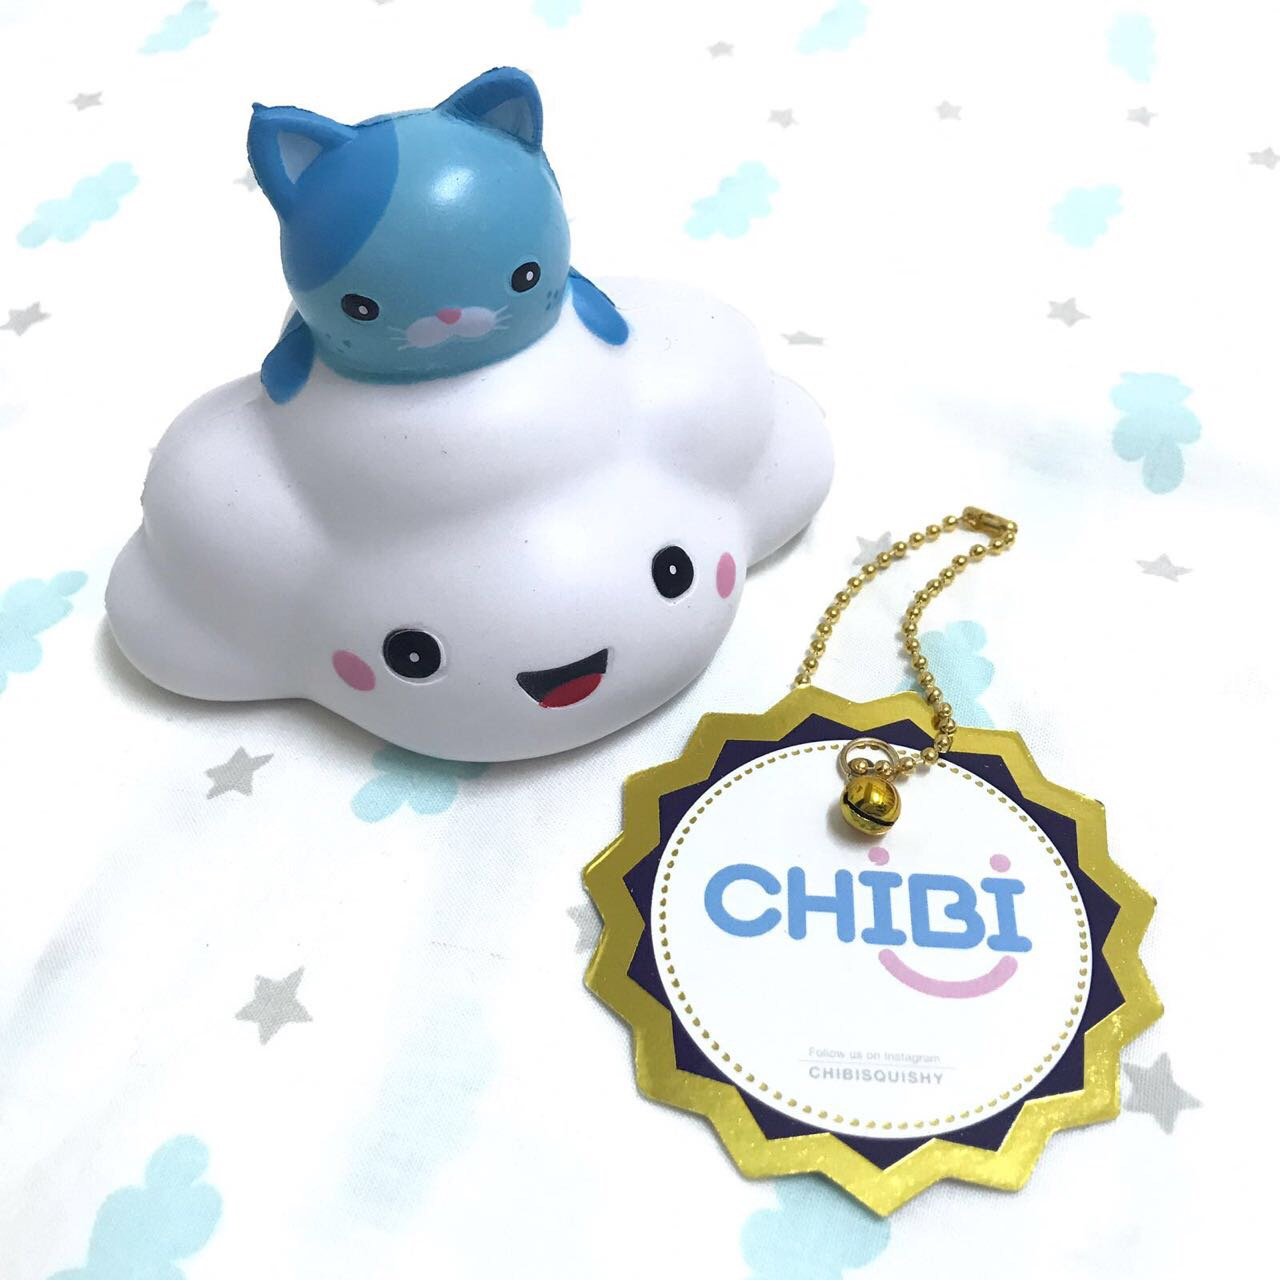 Bff Squishy Tag : Ppancollection kitty on cloud squishy ~ scented